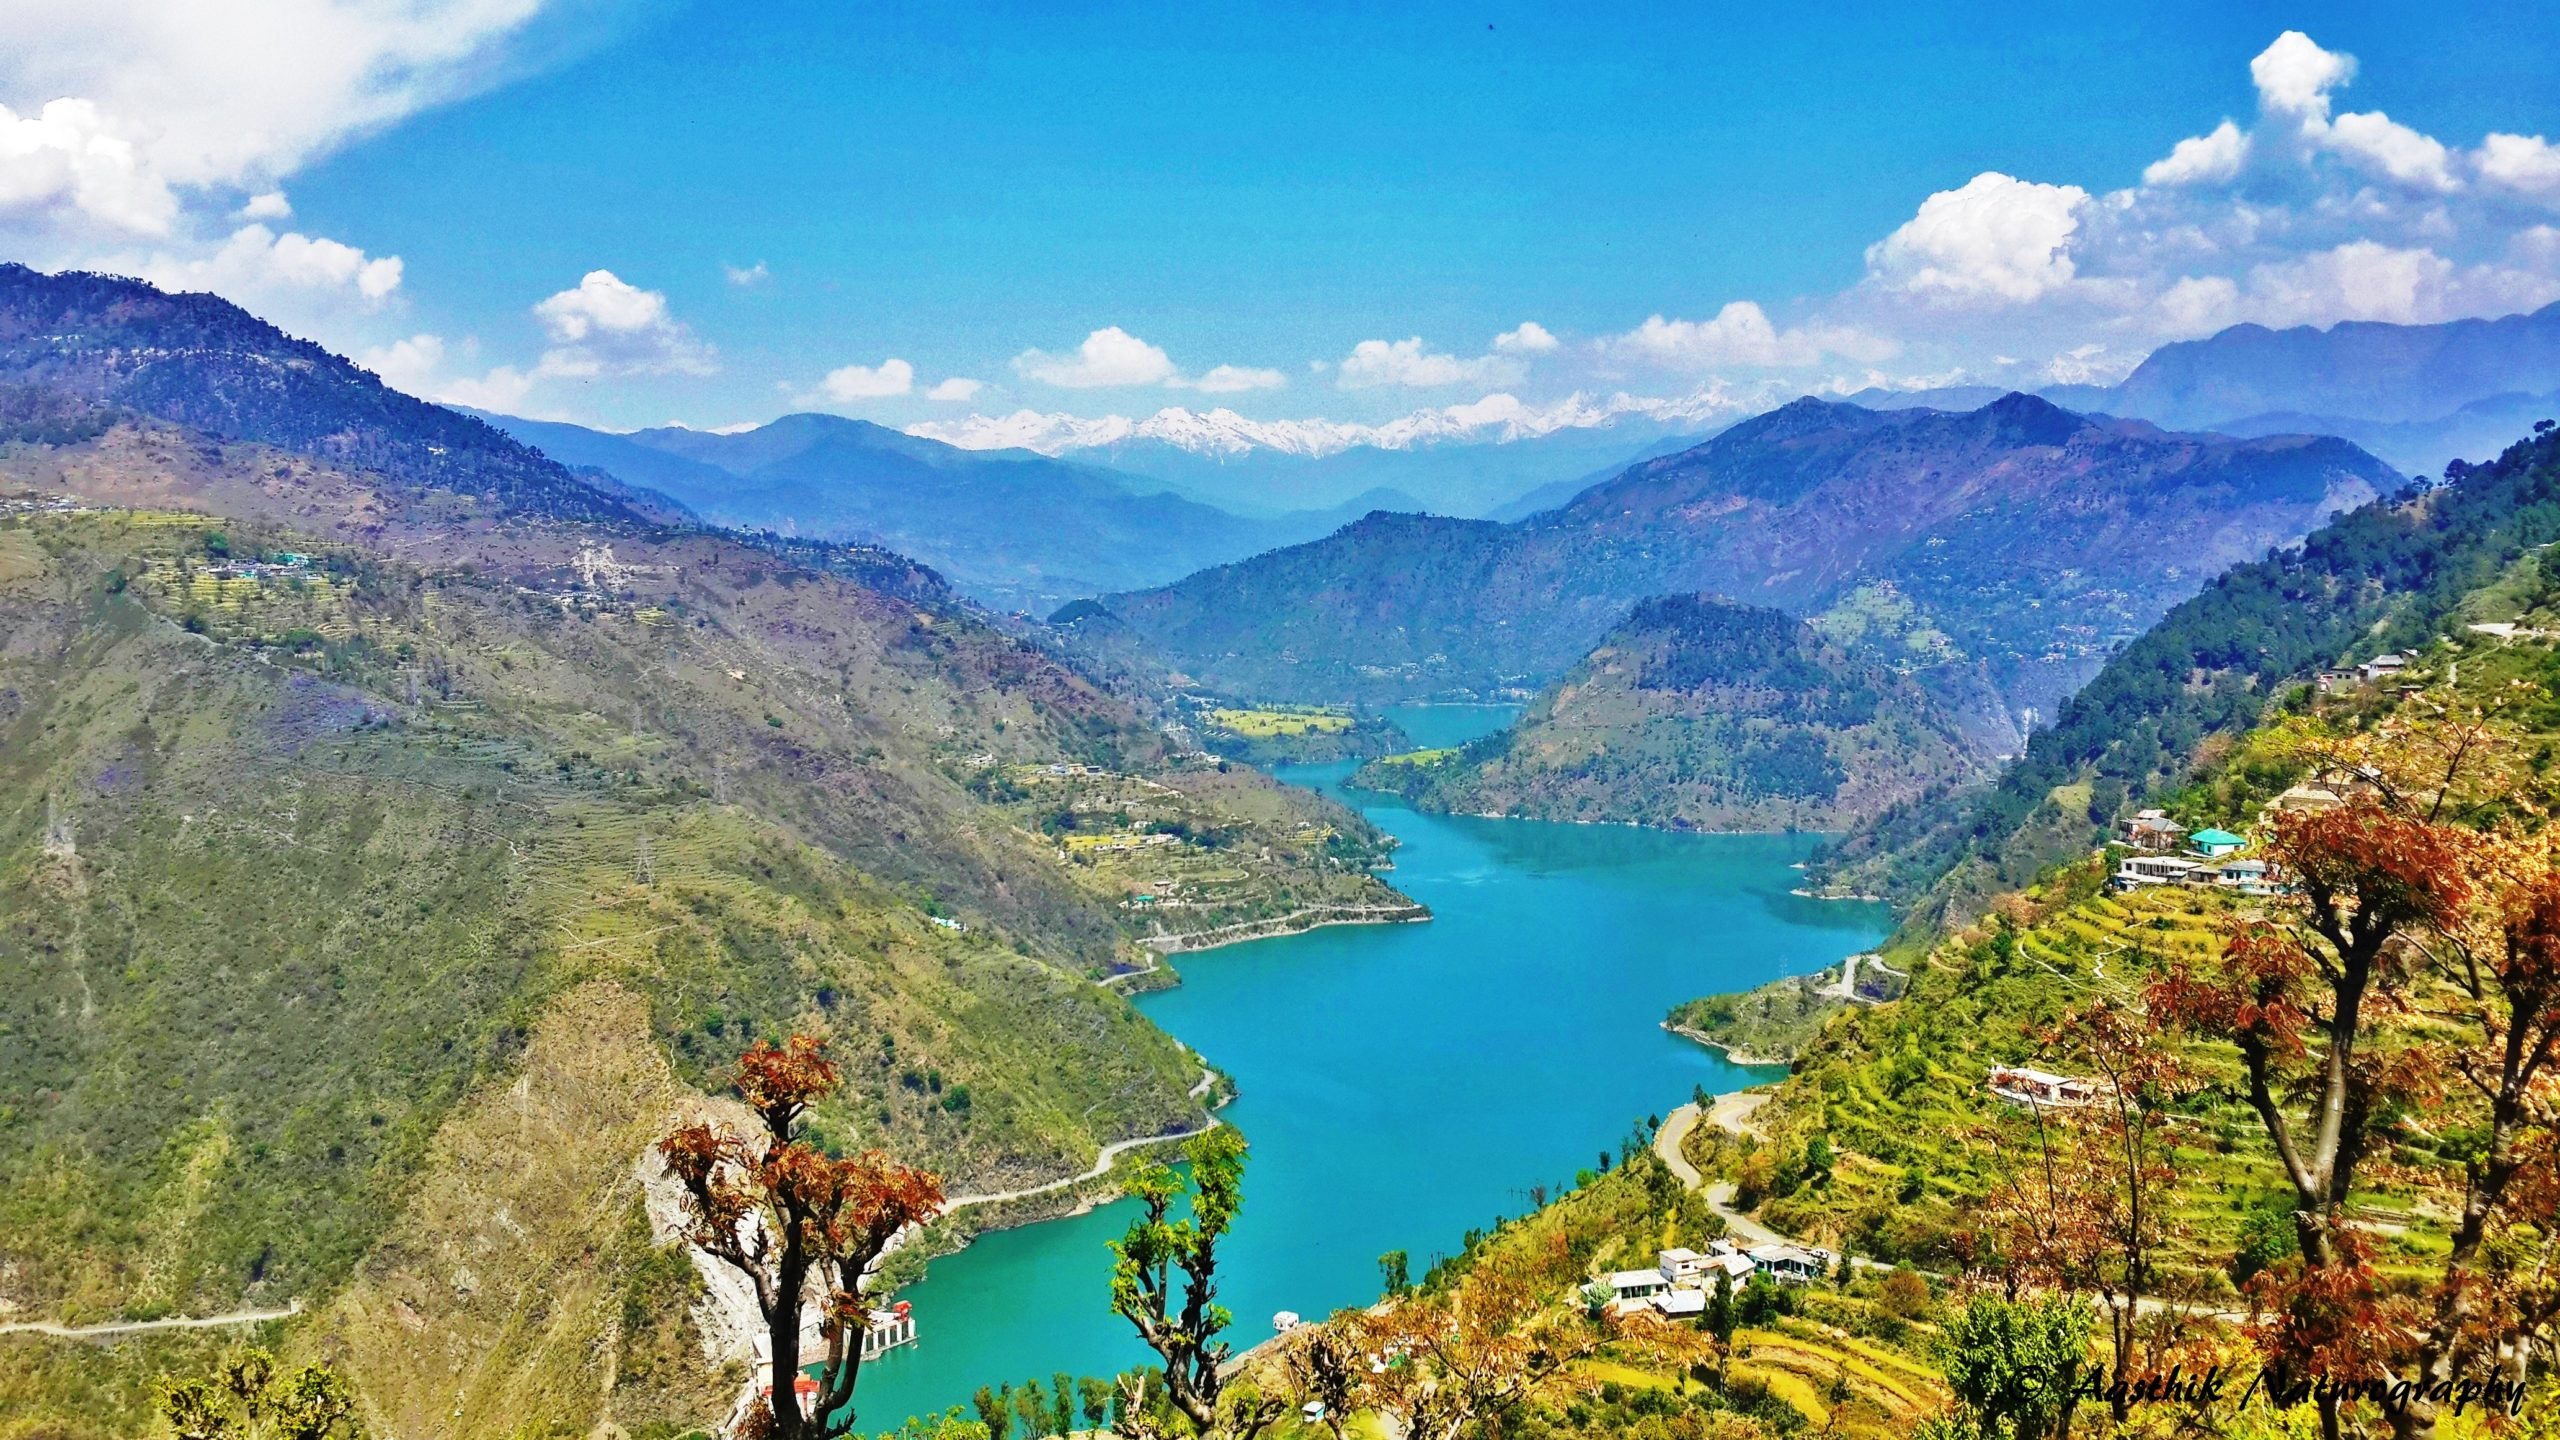 Check Out 6 Outstanding Places to Visit in Chamba, Himachal Pradesh